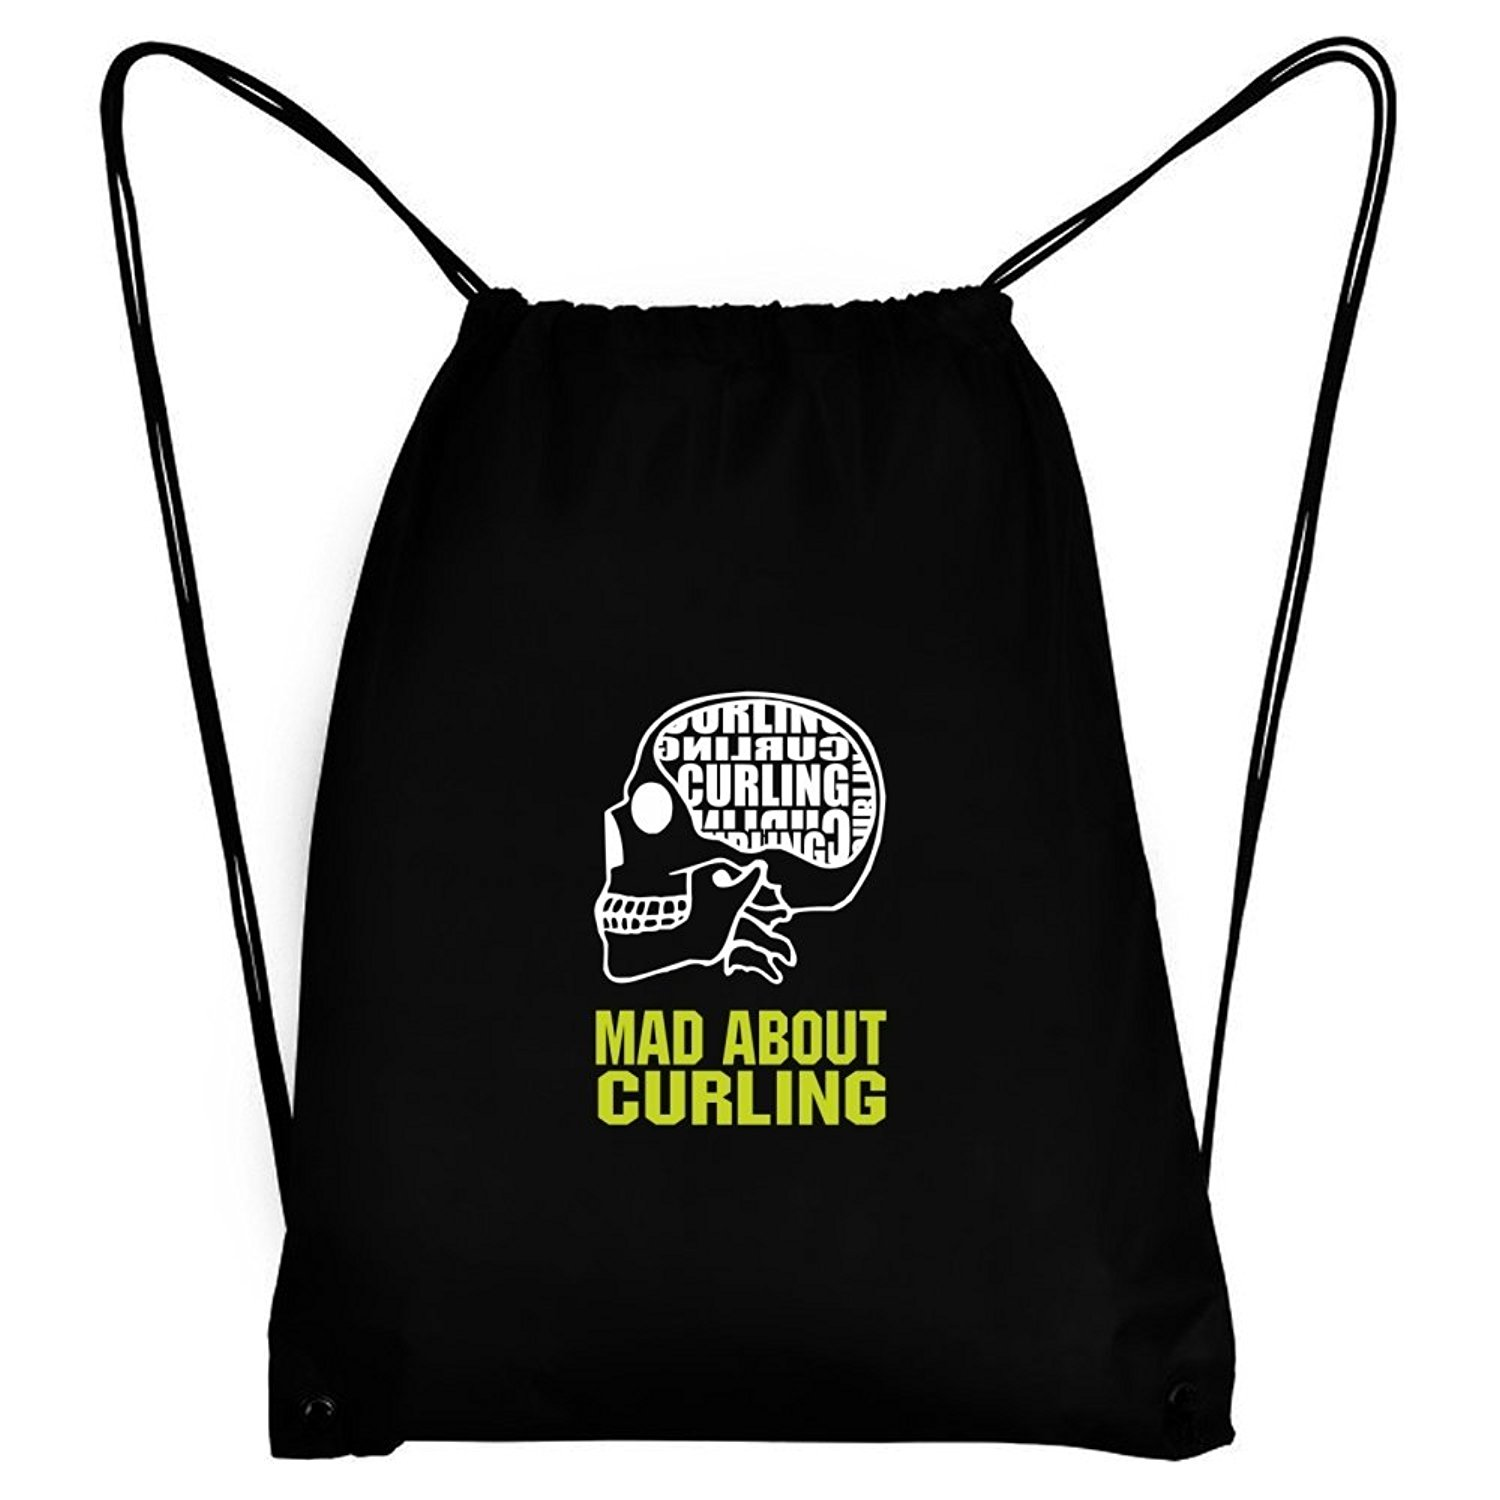 Teeburon MAD ABOUT Curling SKULL Sport Bag